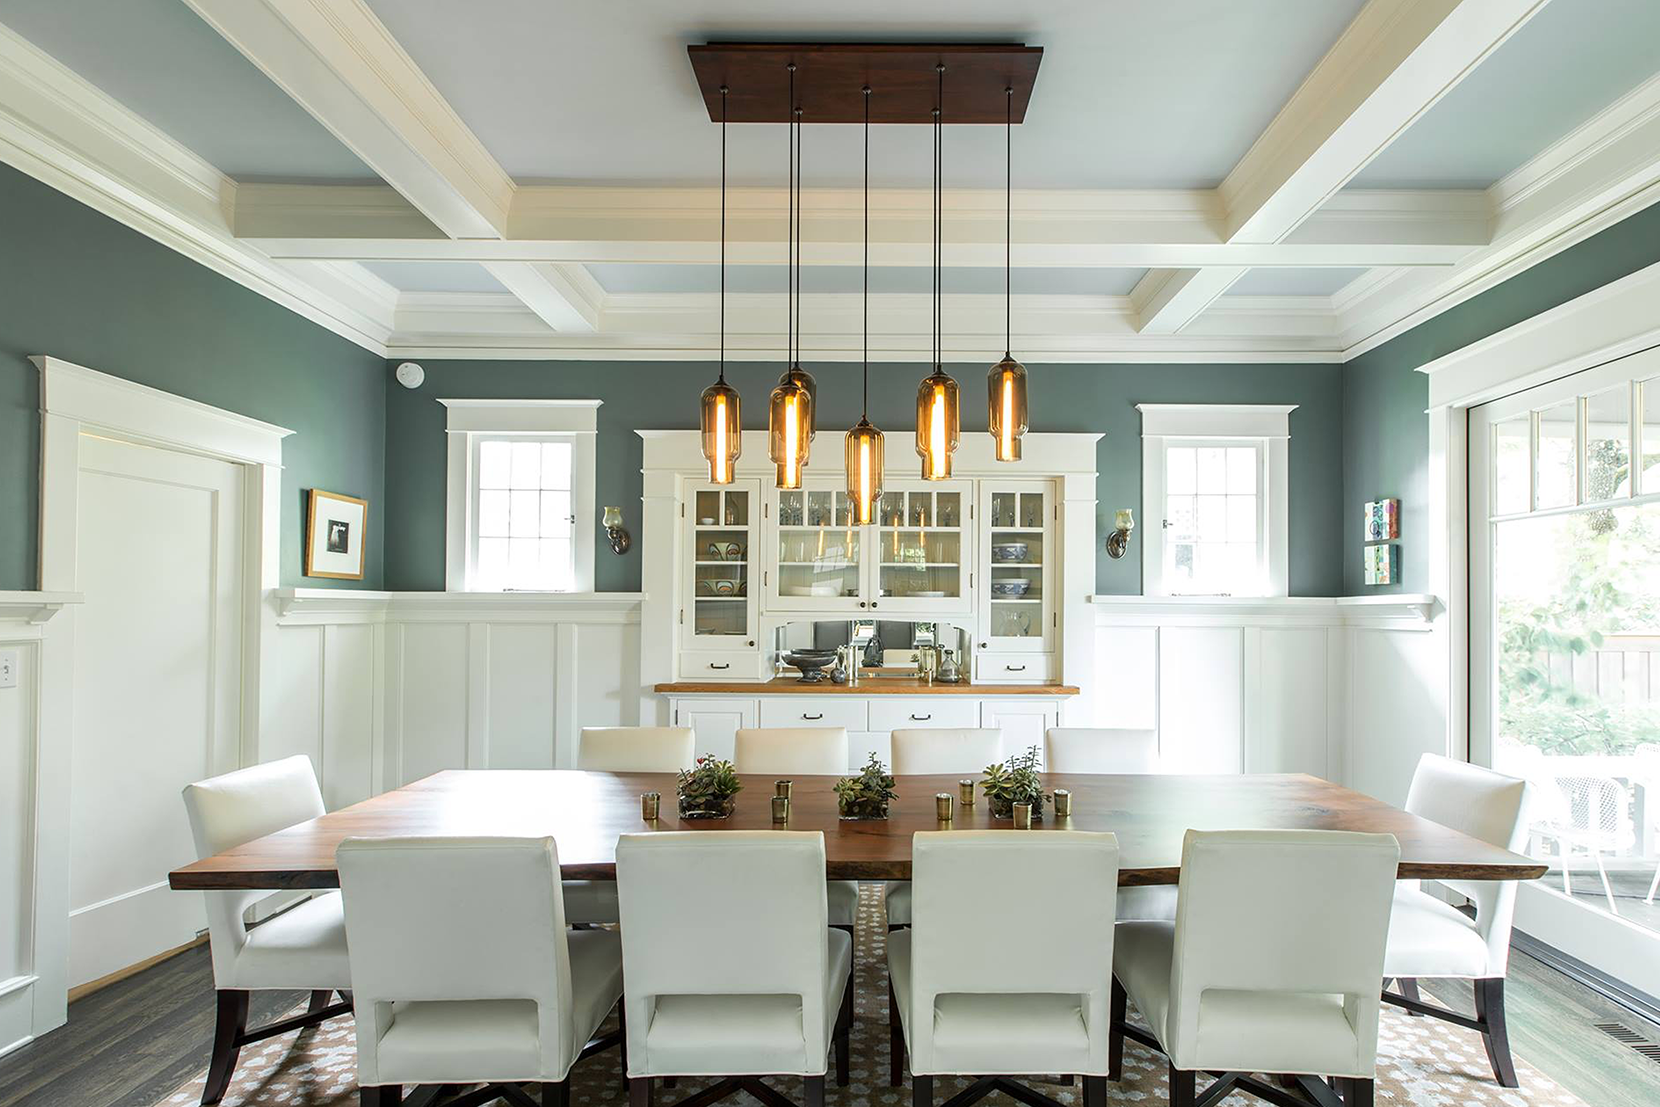 dining room lighting modern. + Read More · Lighting-Project-Pages_0006s_0010_Custom-Modern-Dining-Room -Pendant-Lighting- Dining Room Lighting Modern O